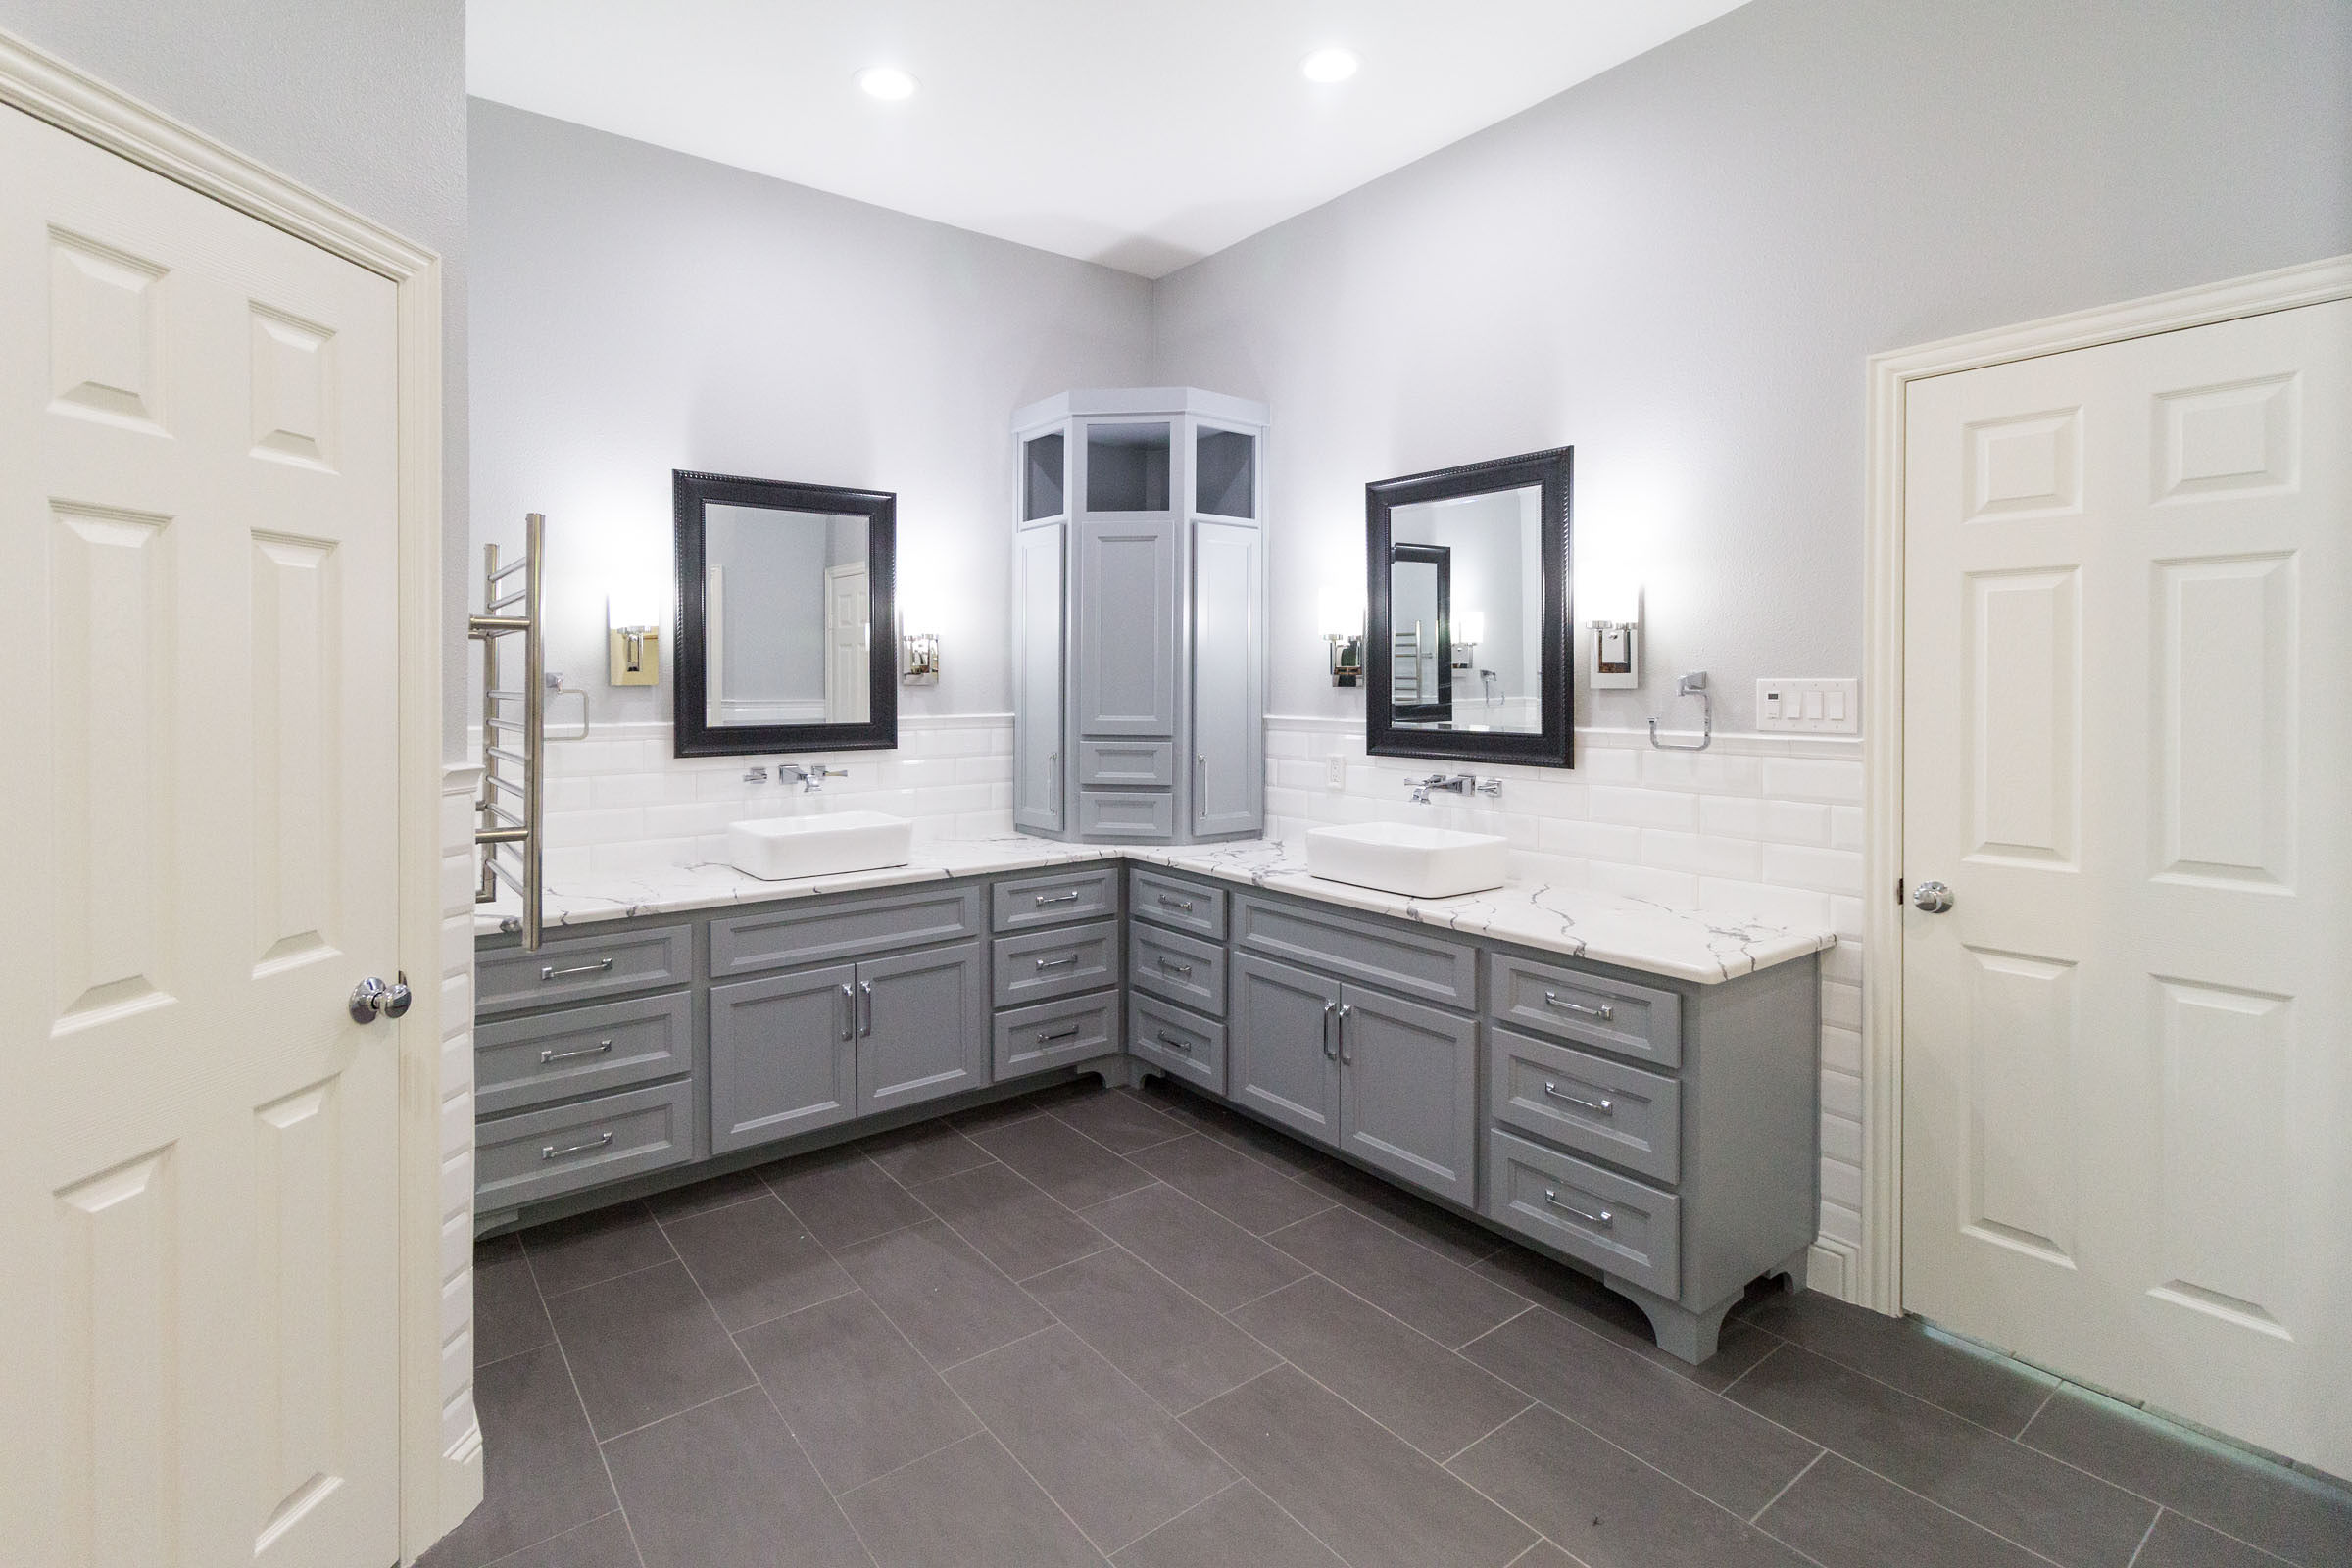 Bathroom remodel with grey and white features, contemporary style, clean and bright